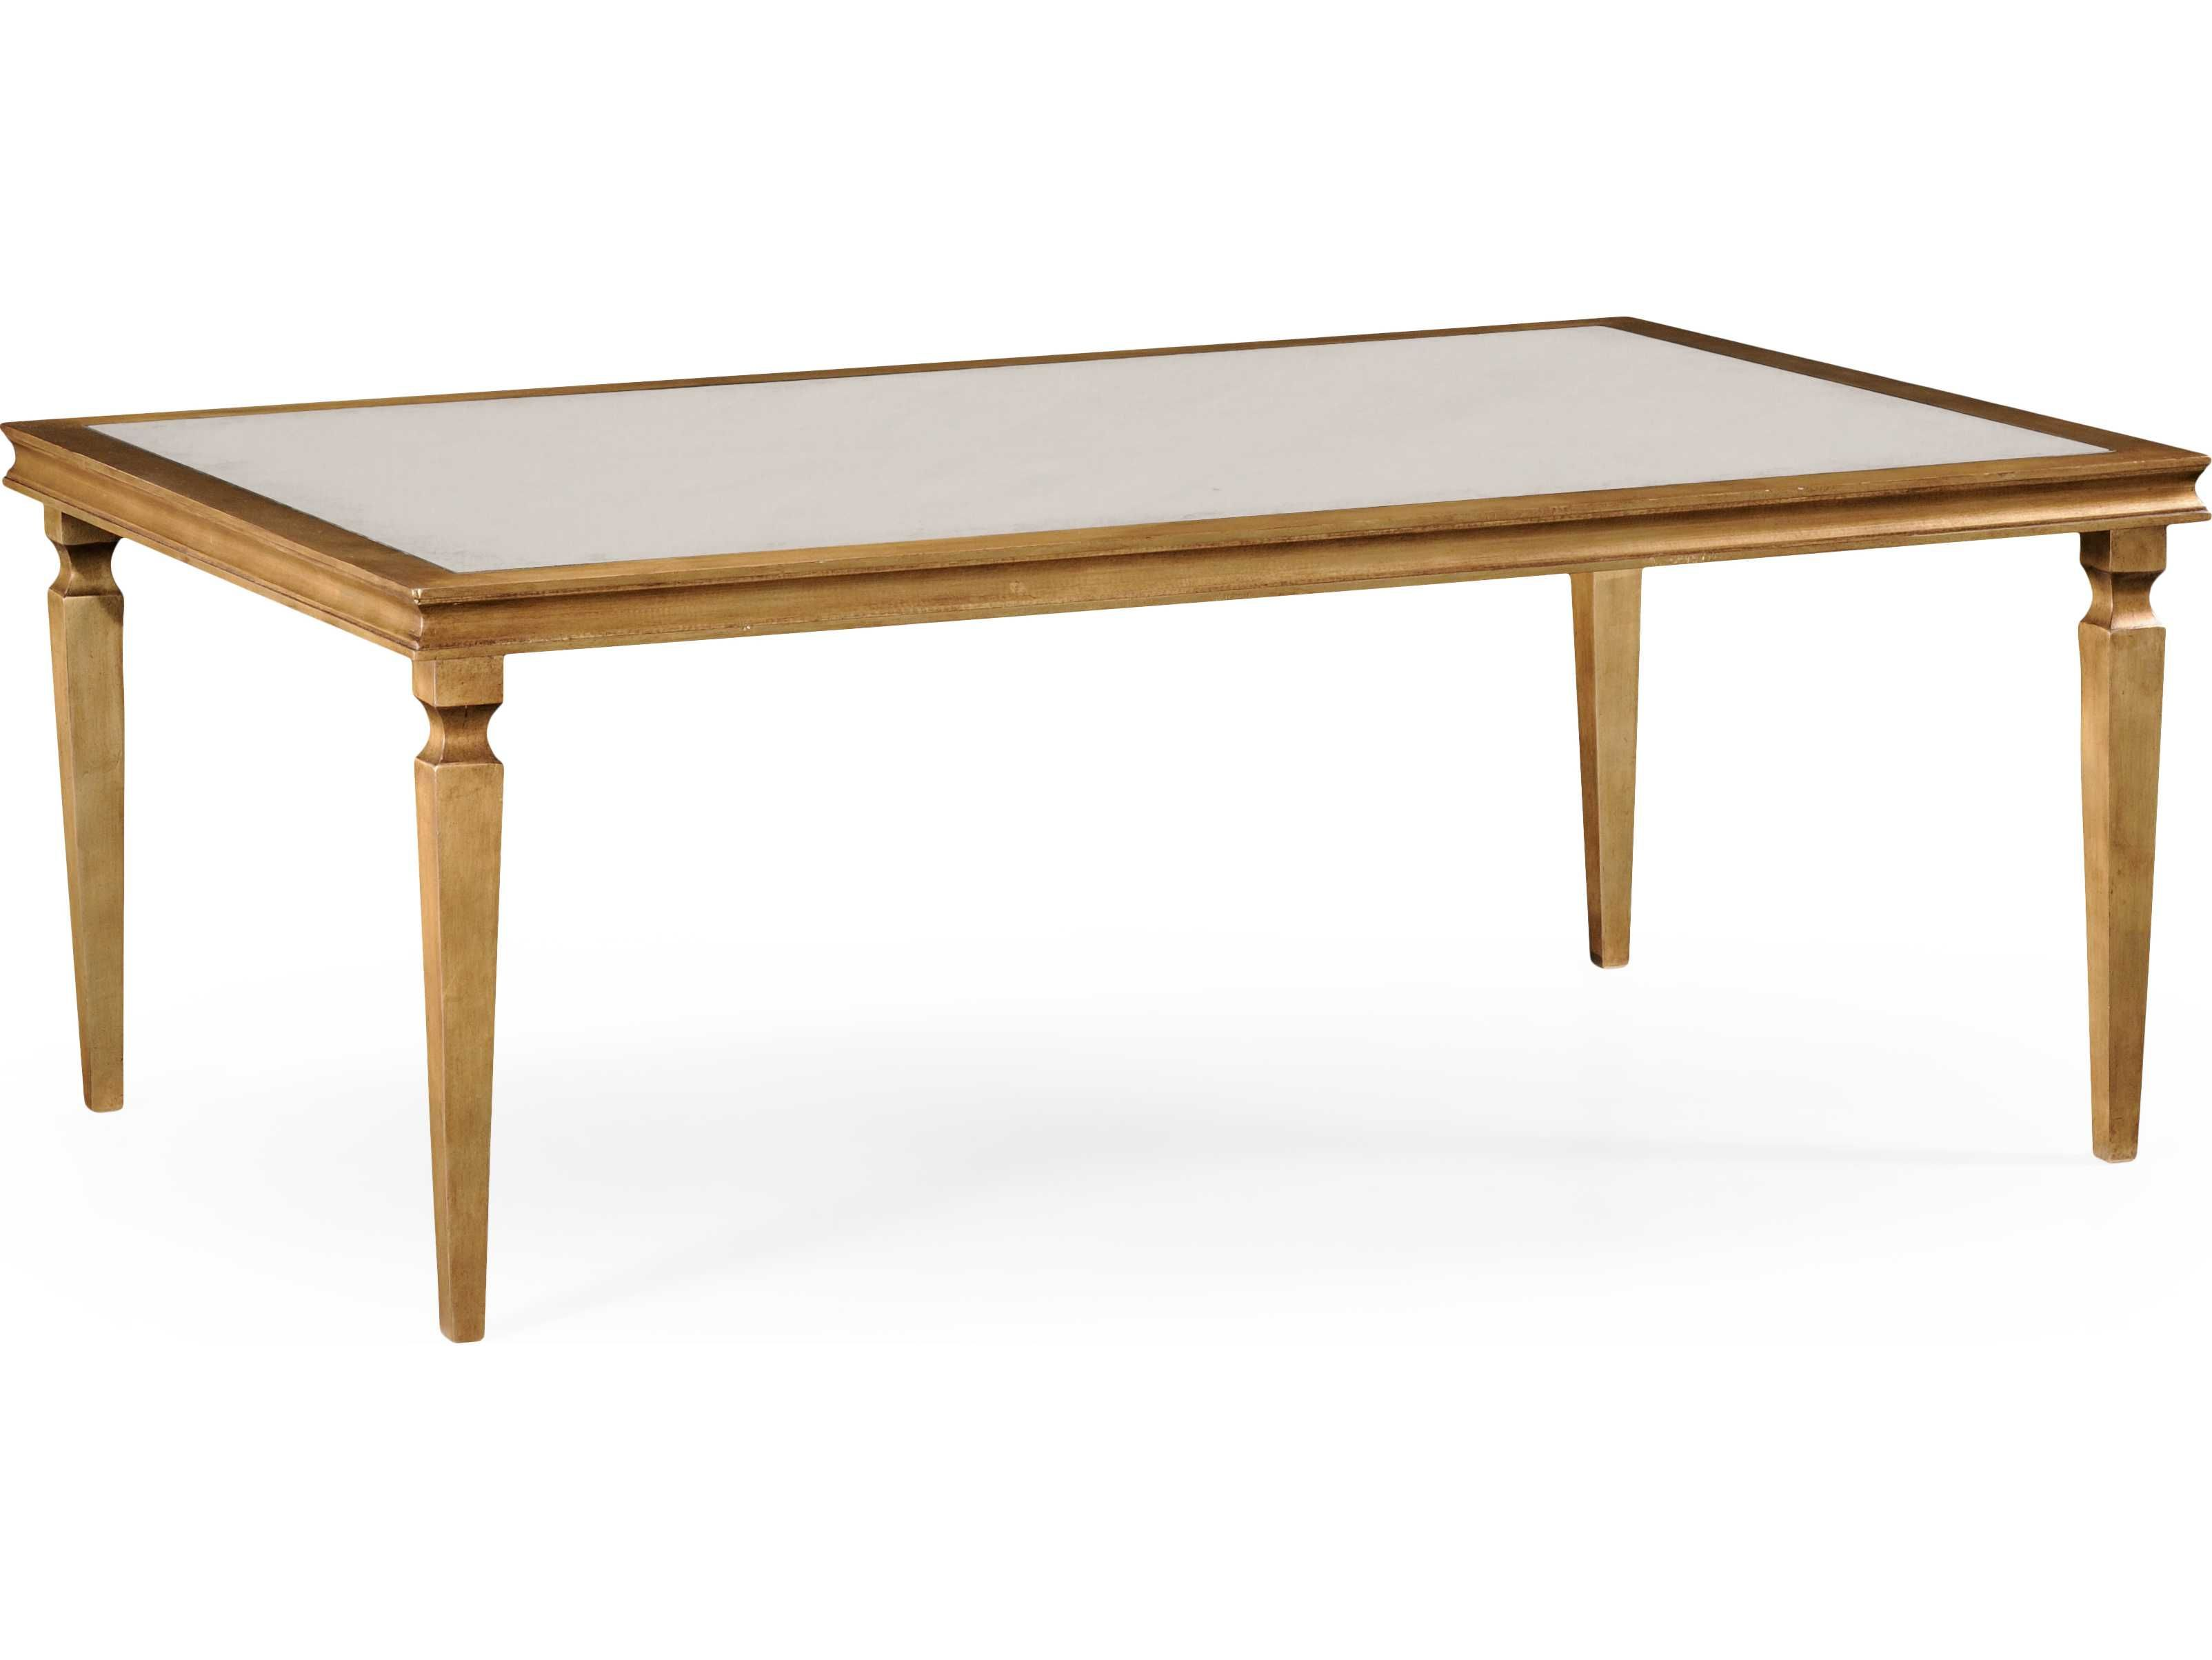 Jonathan Charles Luxe Gilded Iron 54 X 36 Rectangular Coffee Table Coffee Table Iron Coffee Table Table